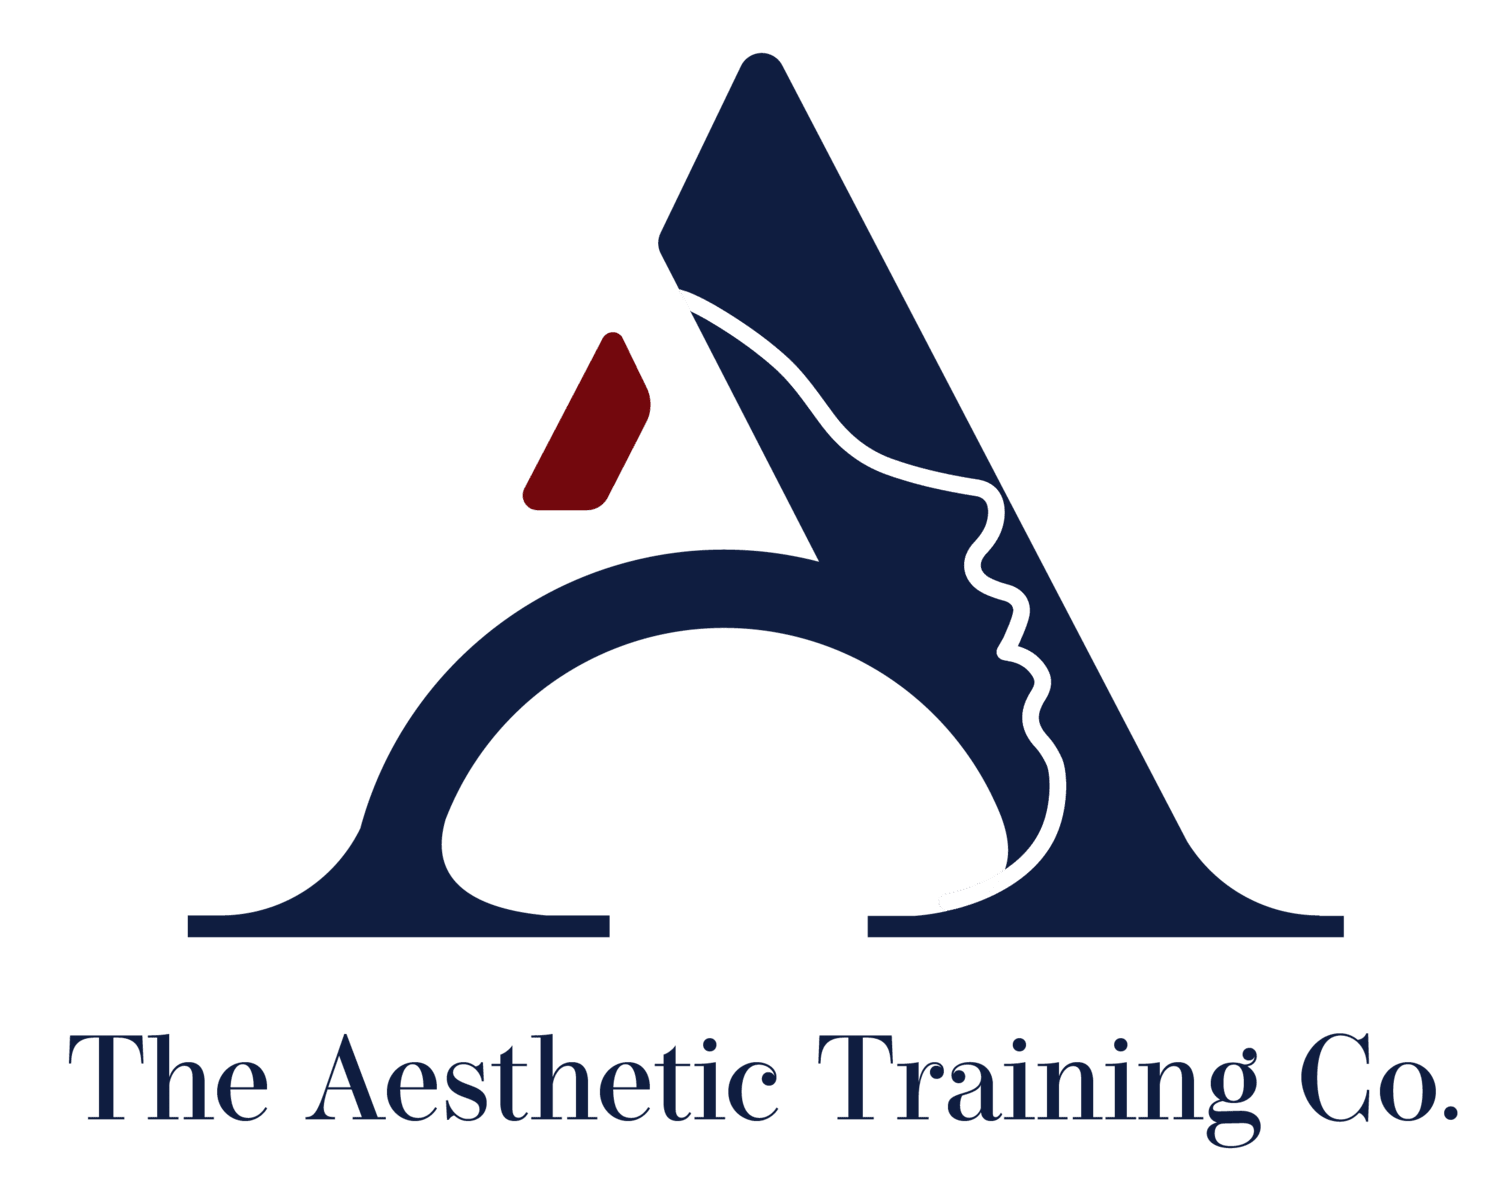 The Aesthetic Training Co